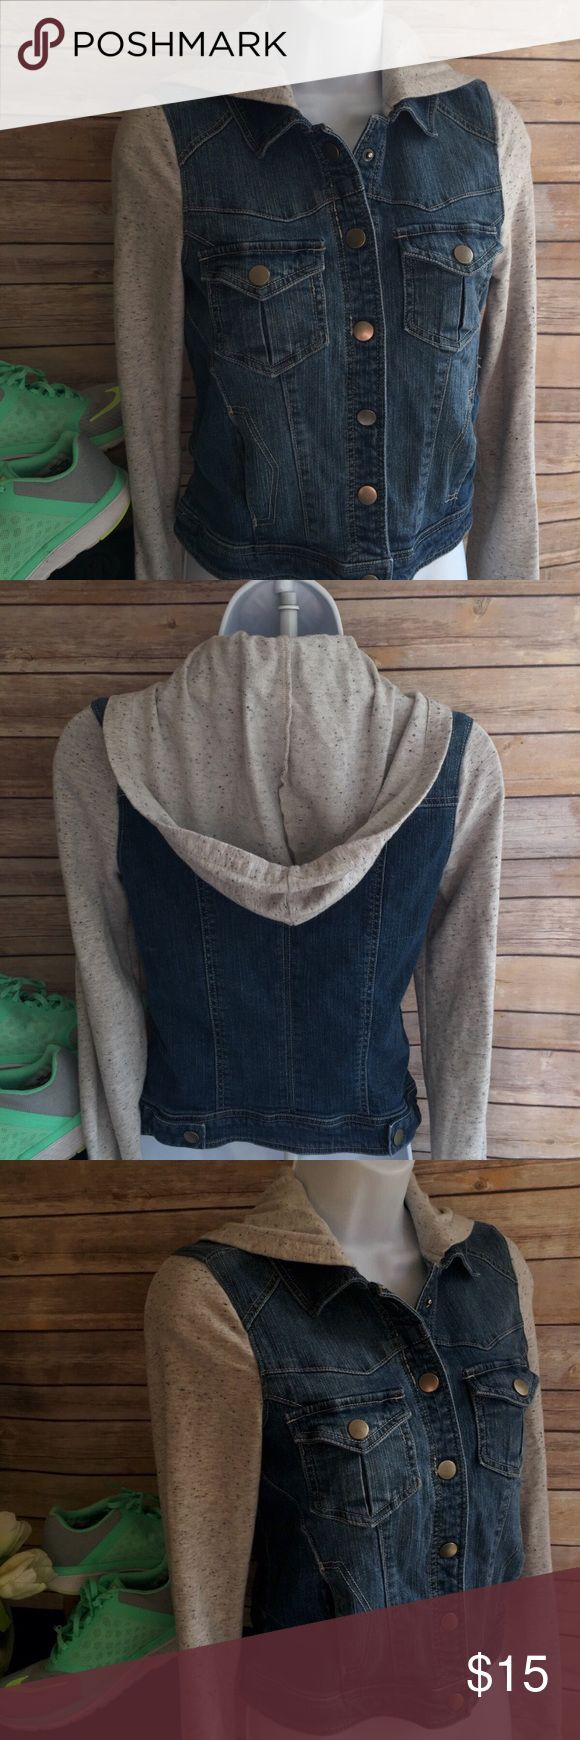 NWOT Hooded Jean and Cotton jacket❄ NWOT Hooded Jean and Cotton jacket❄ by Love FIRE 🔥 SIZE XS love FIRE Jackets & Coats